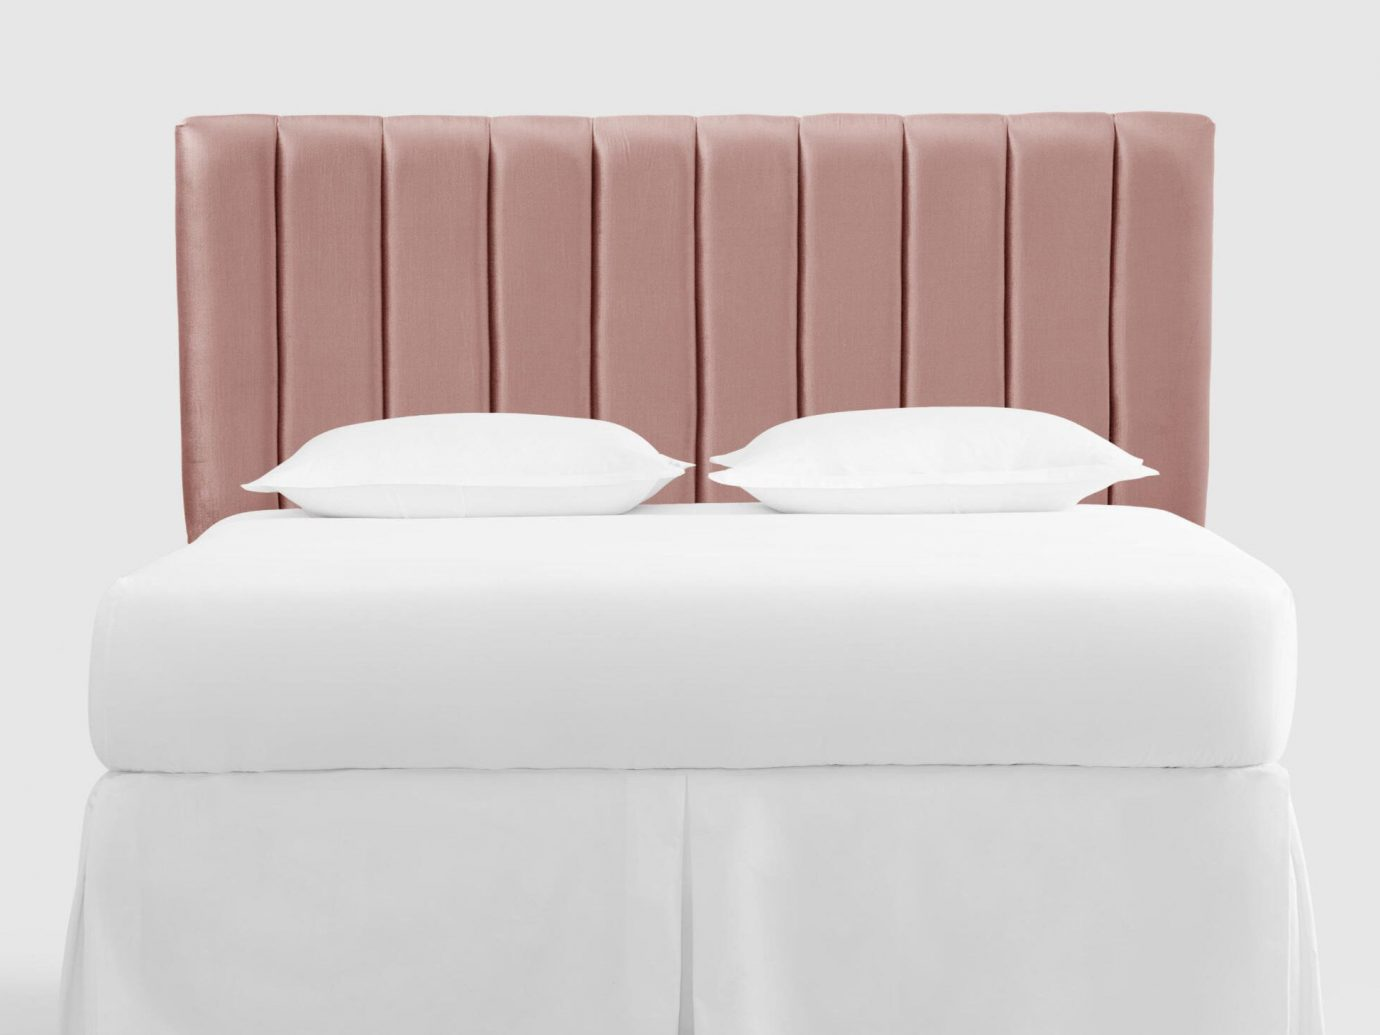 Amsterdam Style + Design The Netherlands Travel Shop furniture seat couch bed frame bed product design product sofa angle sofa bed bed sheet mattress pad comfort